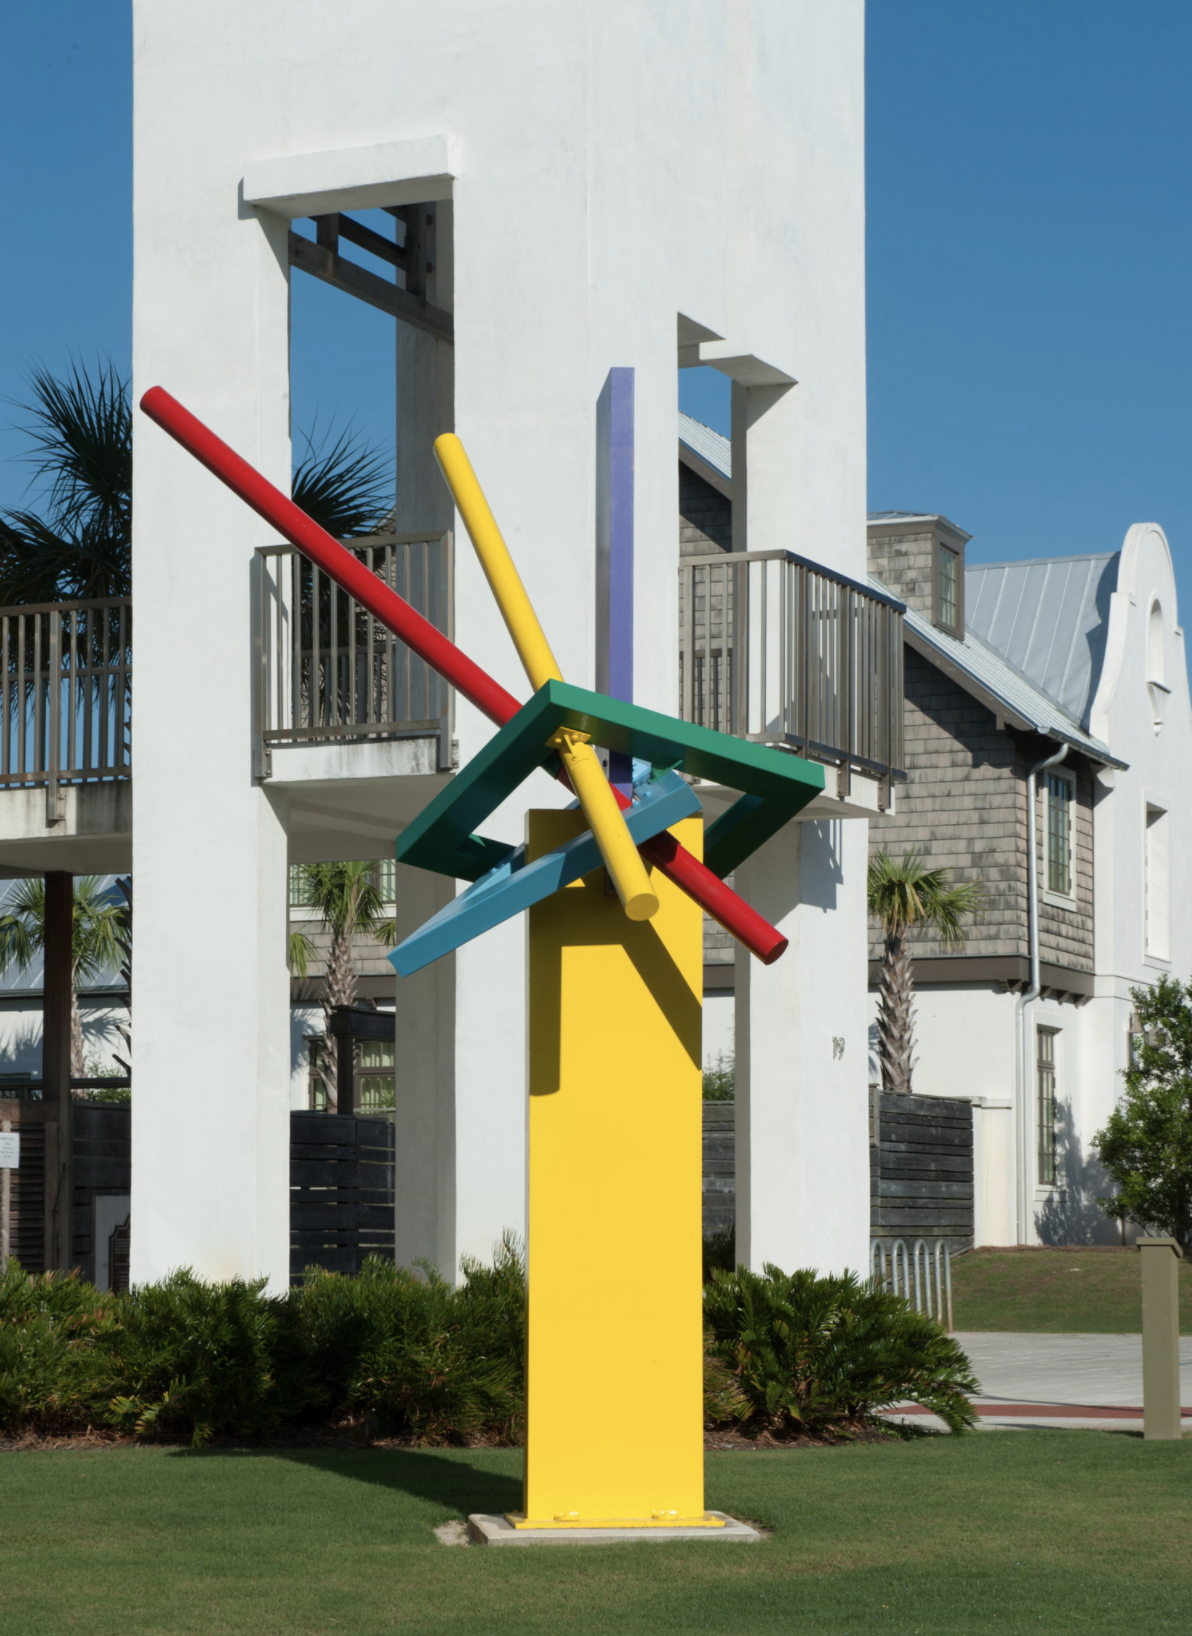 A yellow beam with yellow, red, and blue poles coming from the center.